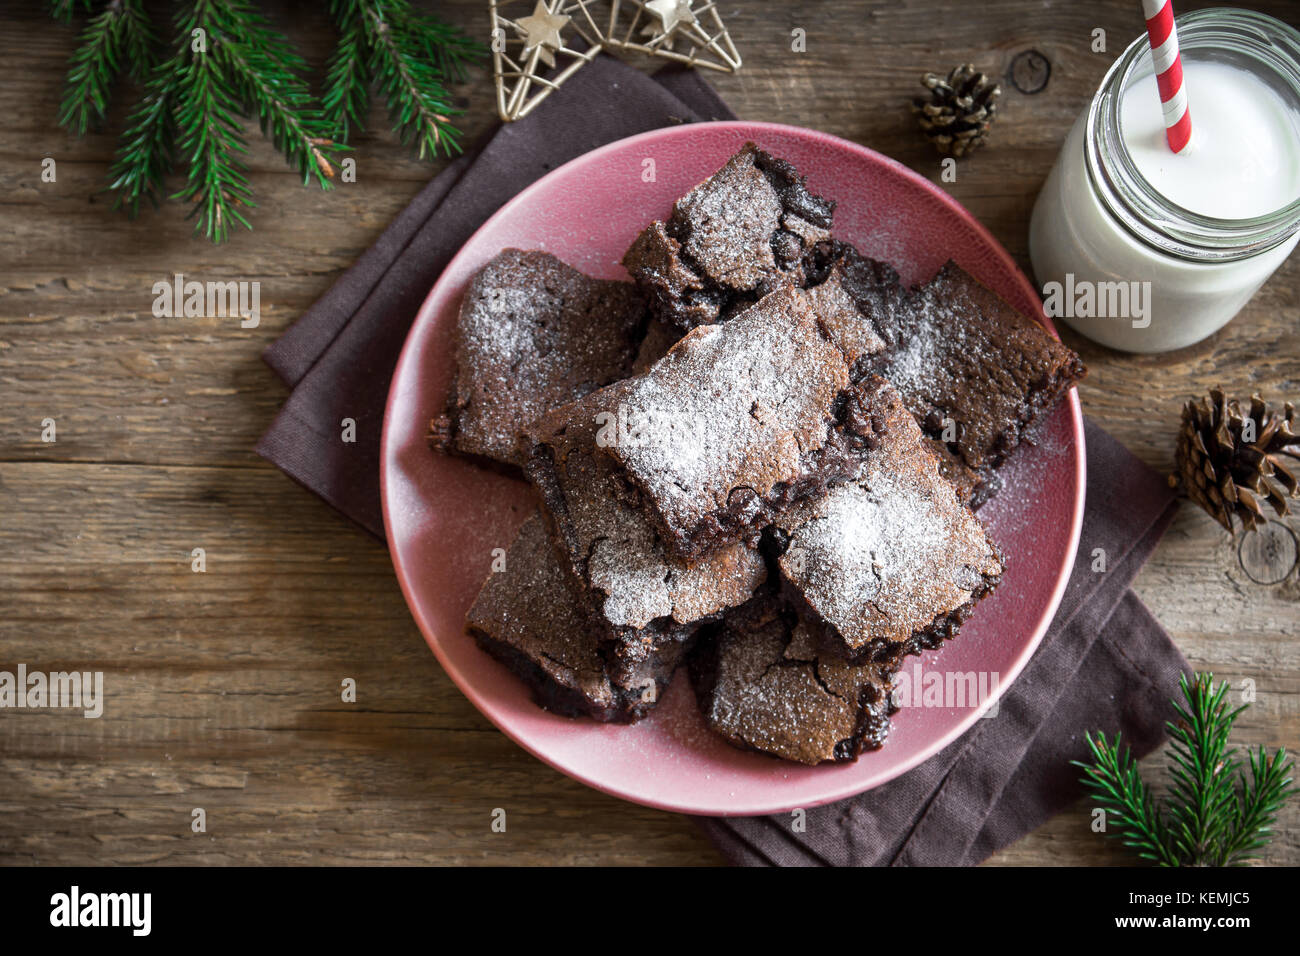 Brownies for Christmas and winter holidays. Homemade chocolate fudge brownies with milk on rustic wooden table. - Stock Image